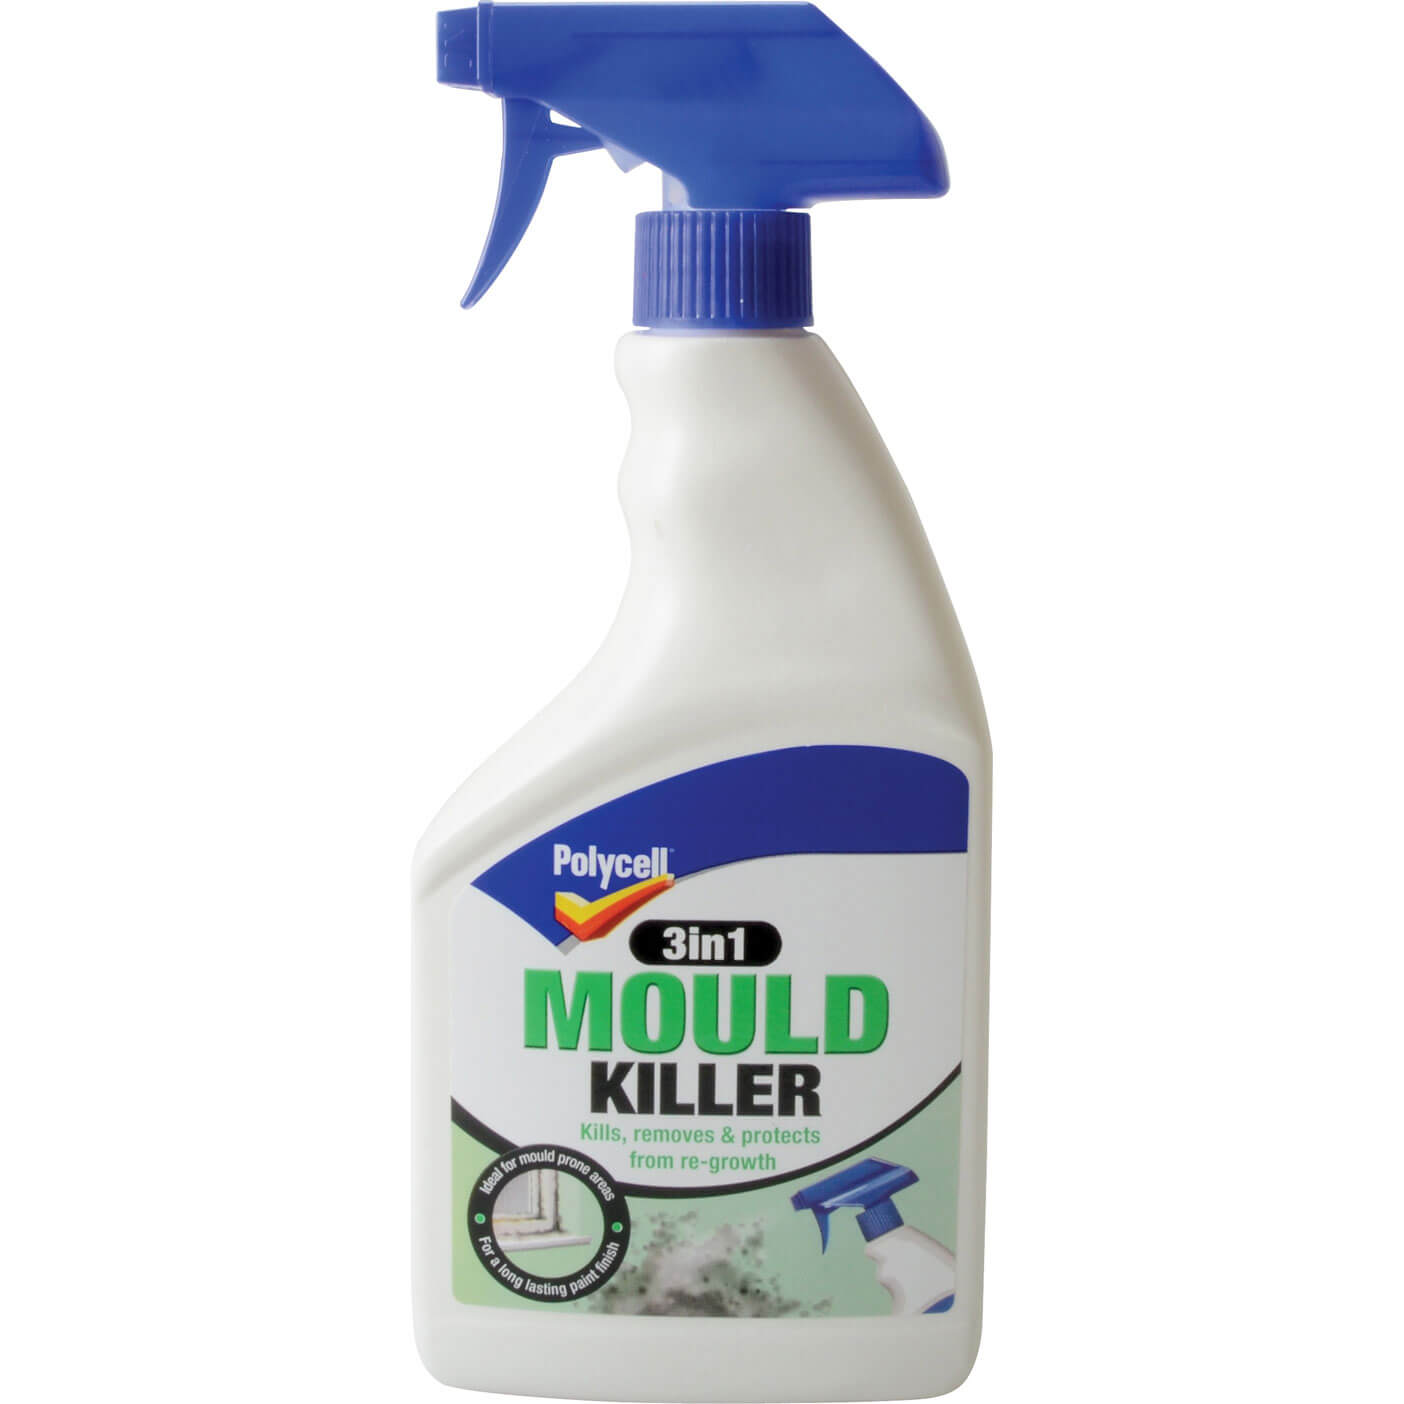 Image of Polycell 3 in 1 Mould Killer Spray 500ml